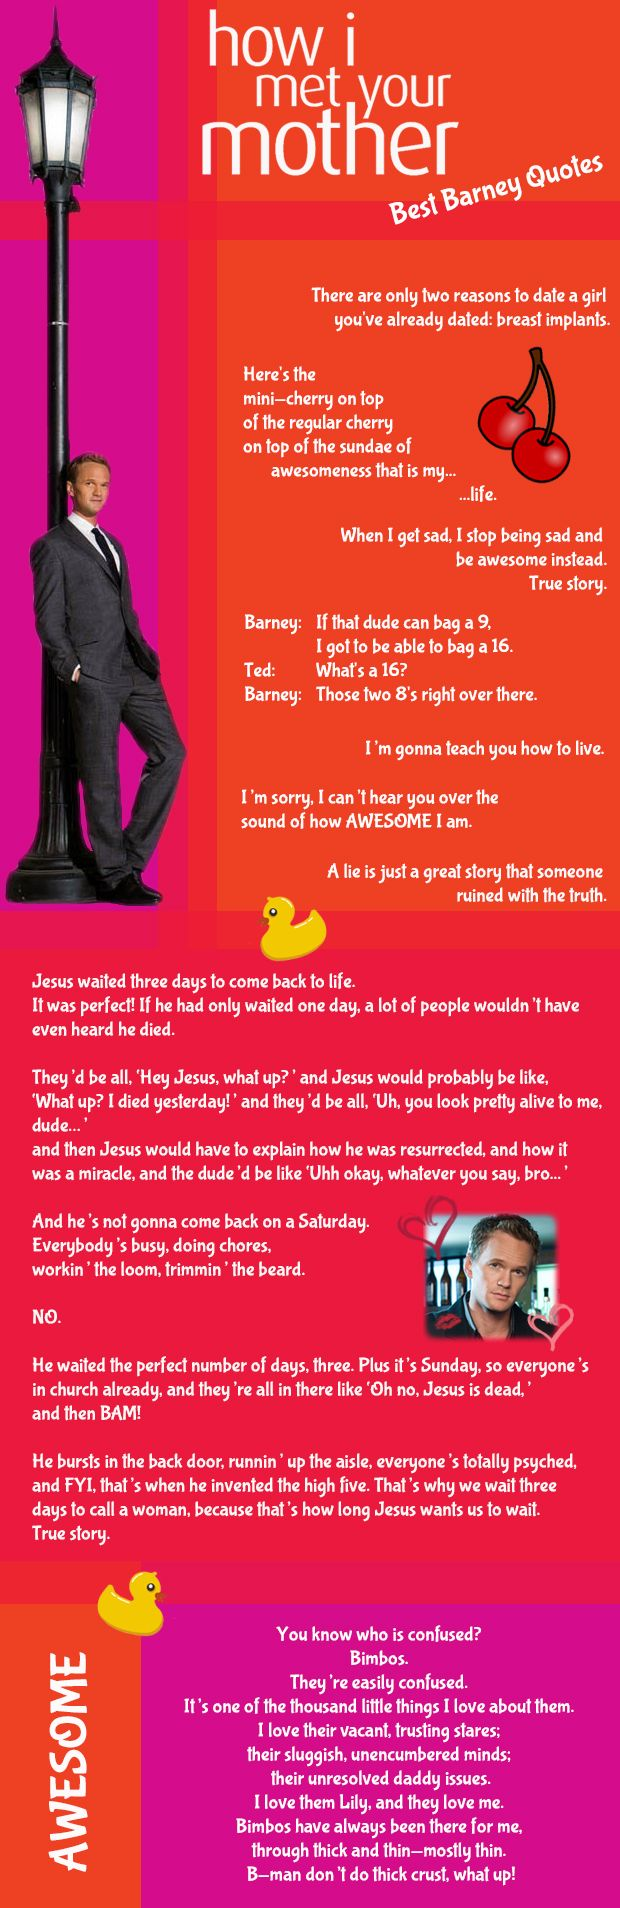 How I Met Your Mother - Best Barney quotes